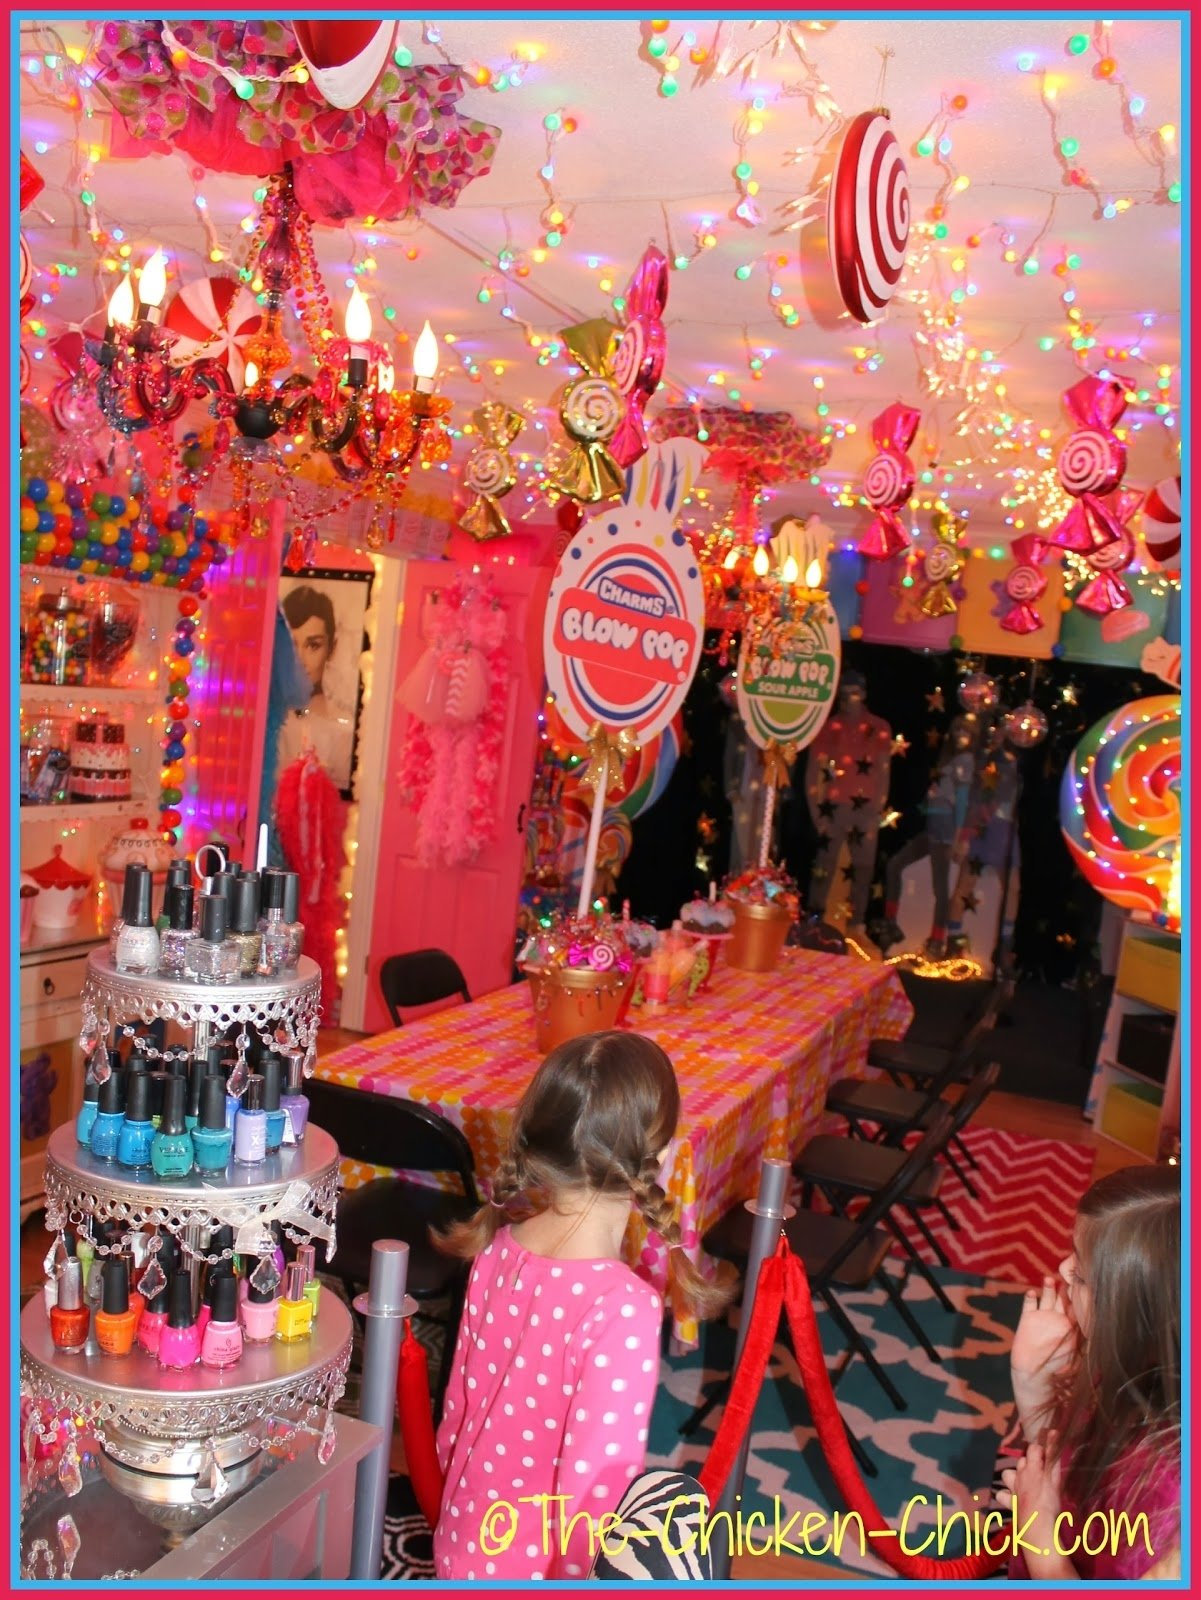 10 Nice 10 Year Old Birthday Ideas spa birthday party ideas for 7 year olds pool design ideas 6 2021